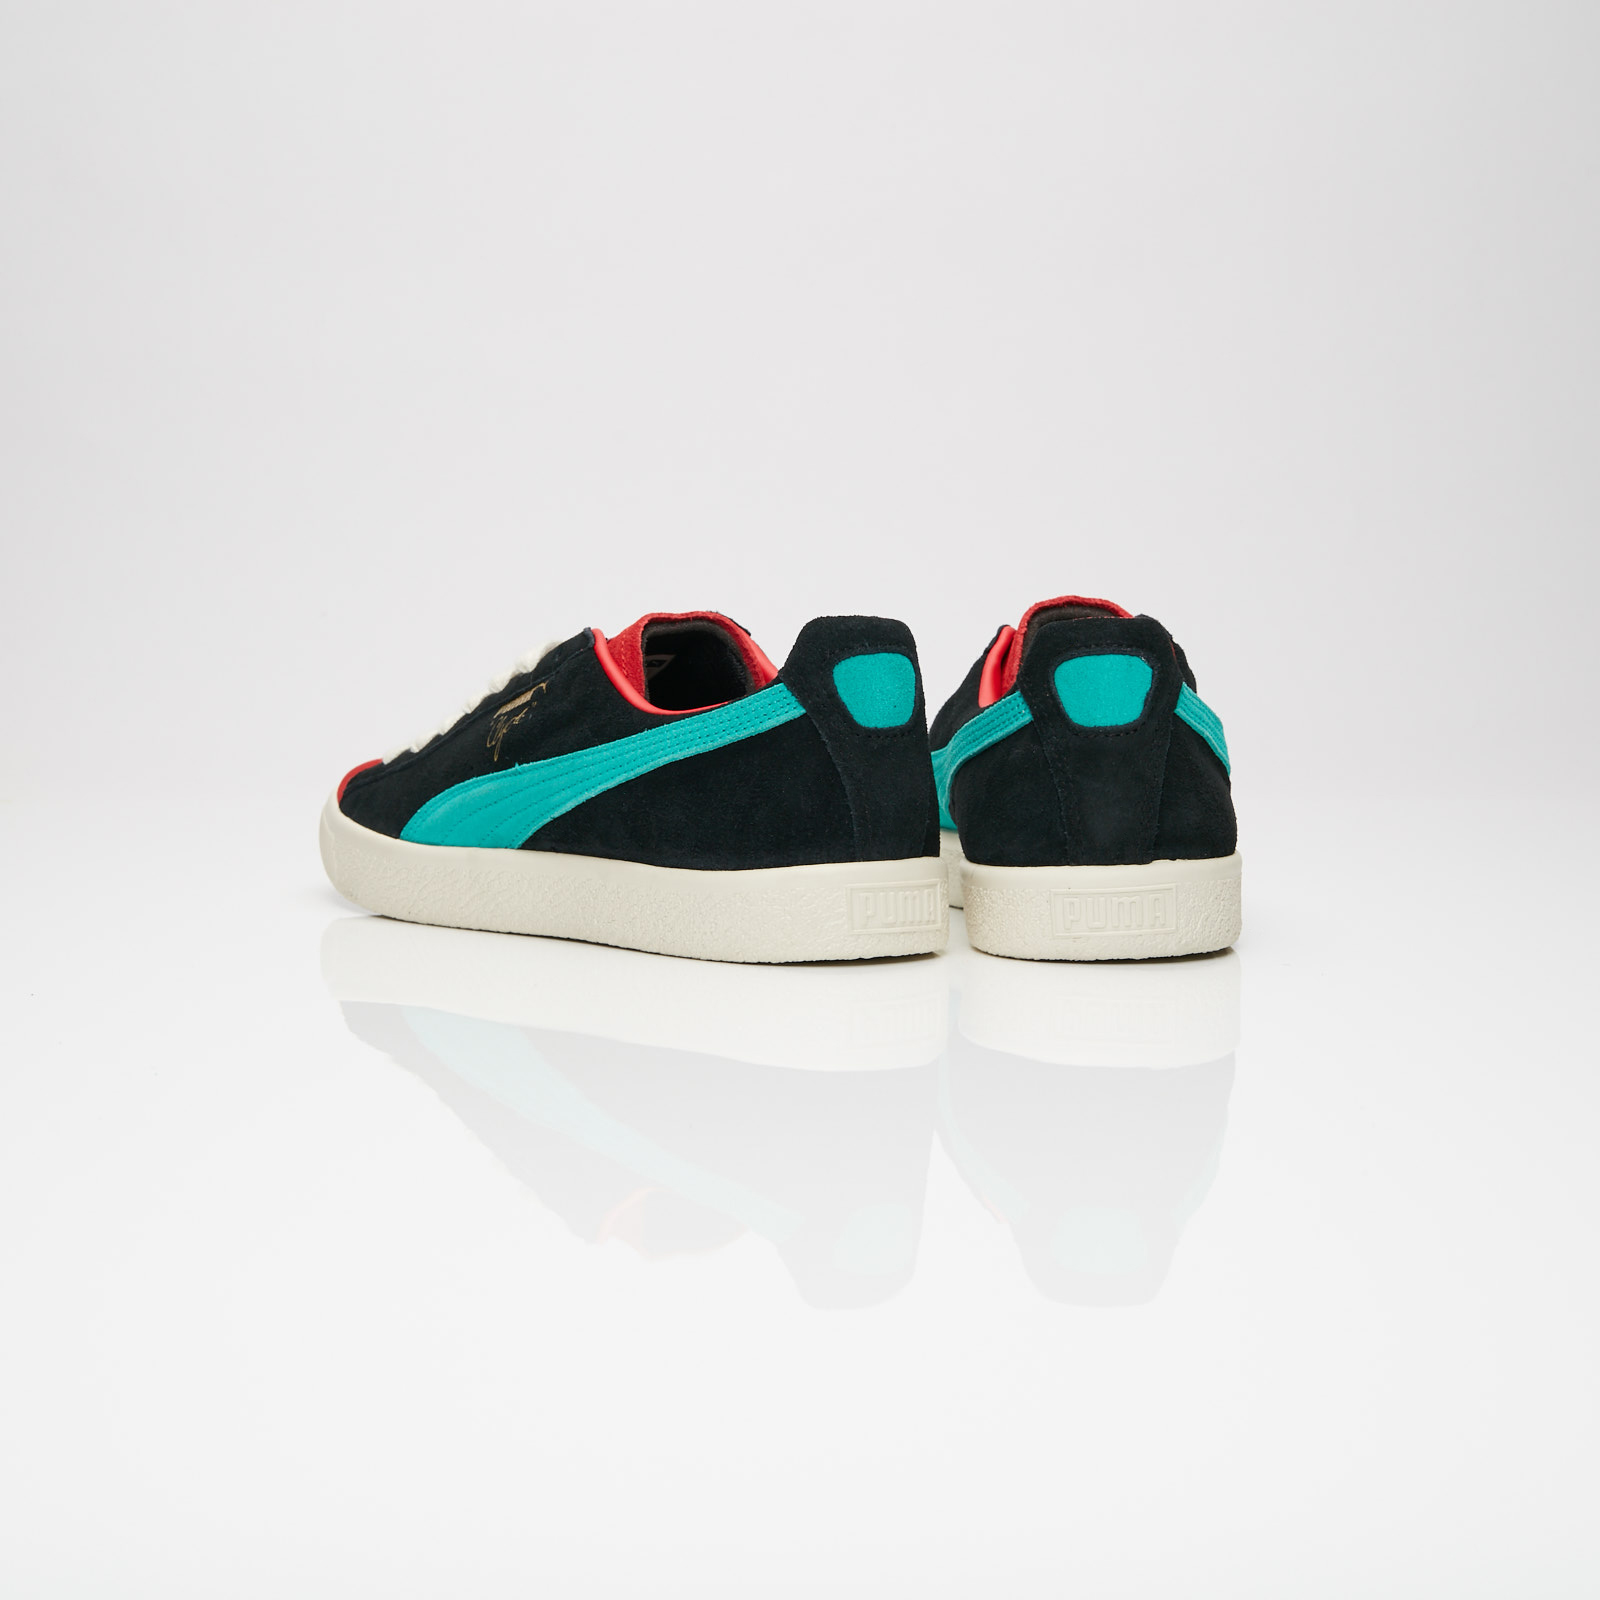 info for 72406 a7f0c Puma Clyde From The Archive - 365319-03 - Sneakersnstuff ...